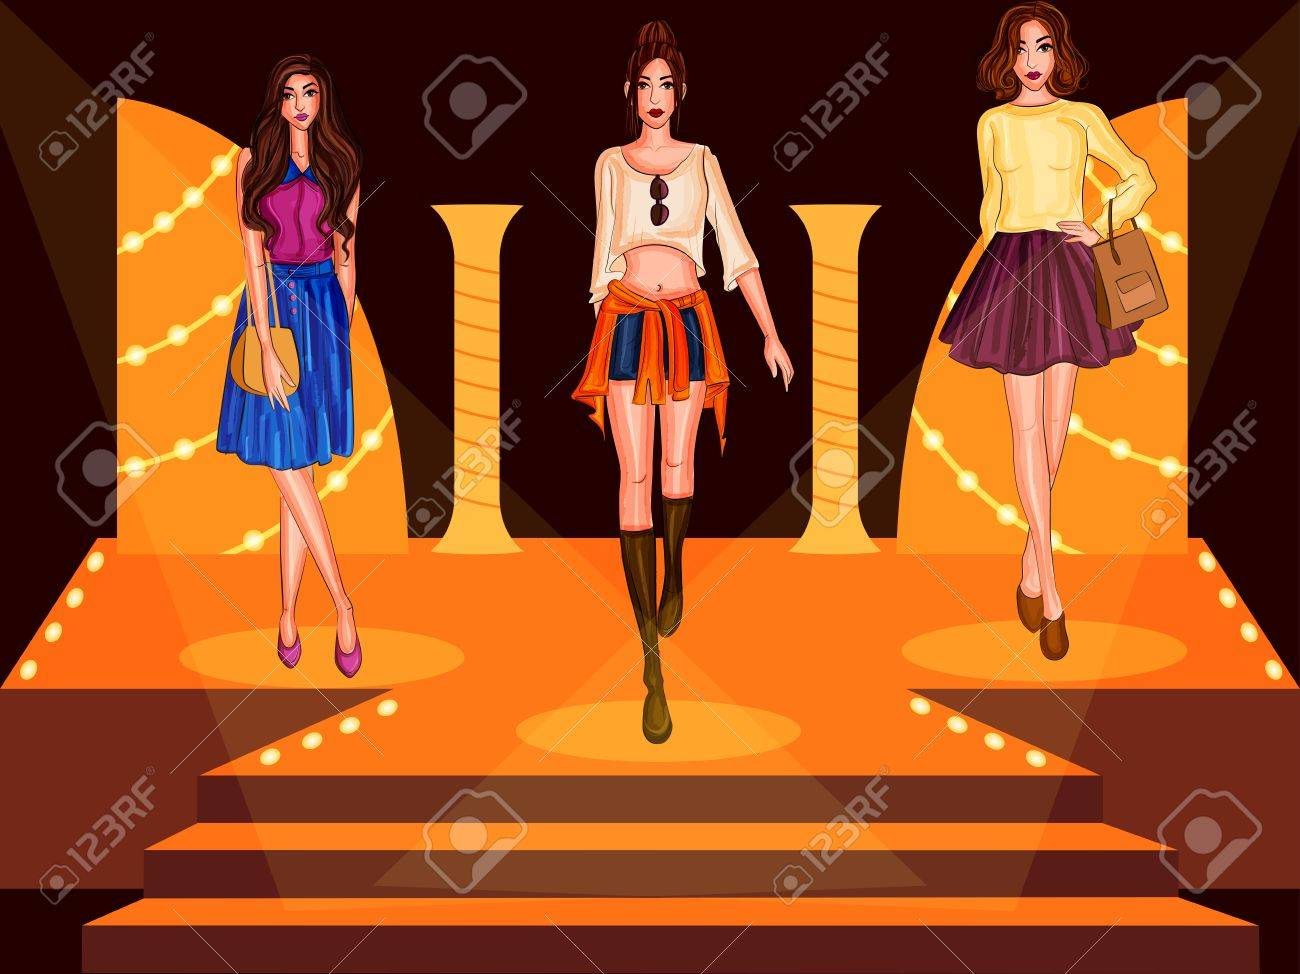 beautiful modern stylish woman model on ramp royalty free cliparts vectors and stock illustration image 83158125 beautiful modern stylish woman model on ramp